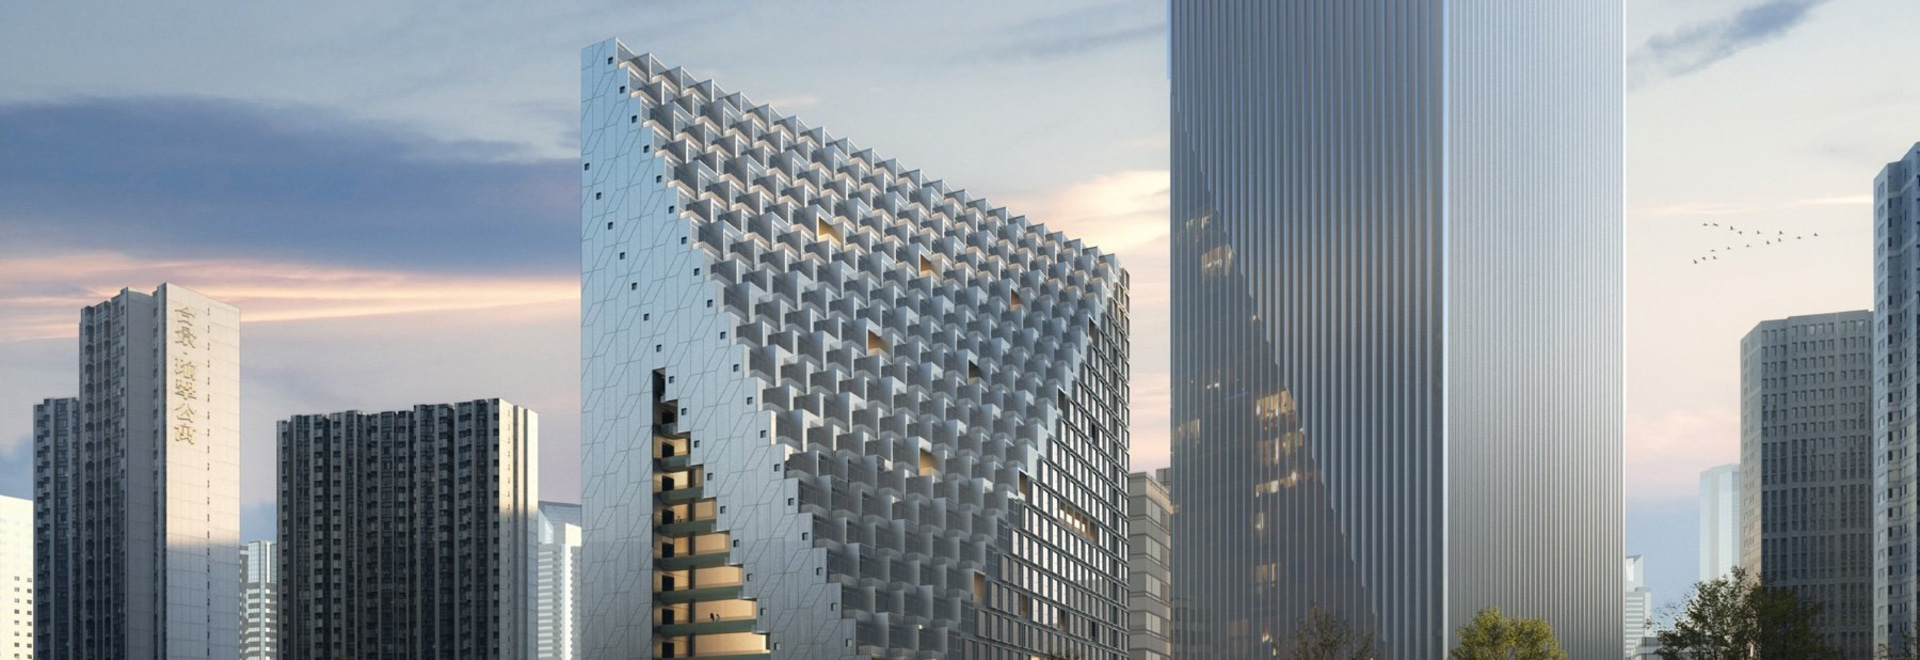 OMA breaks ground on xinhu hangzhou prism in city's future central business district